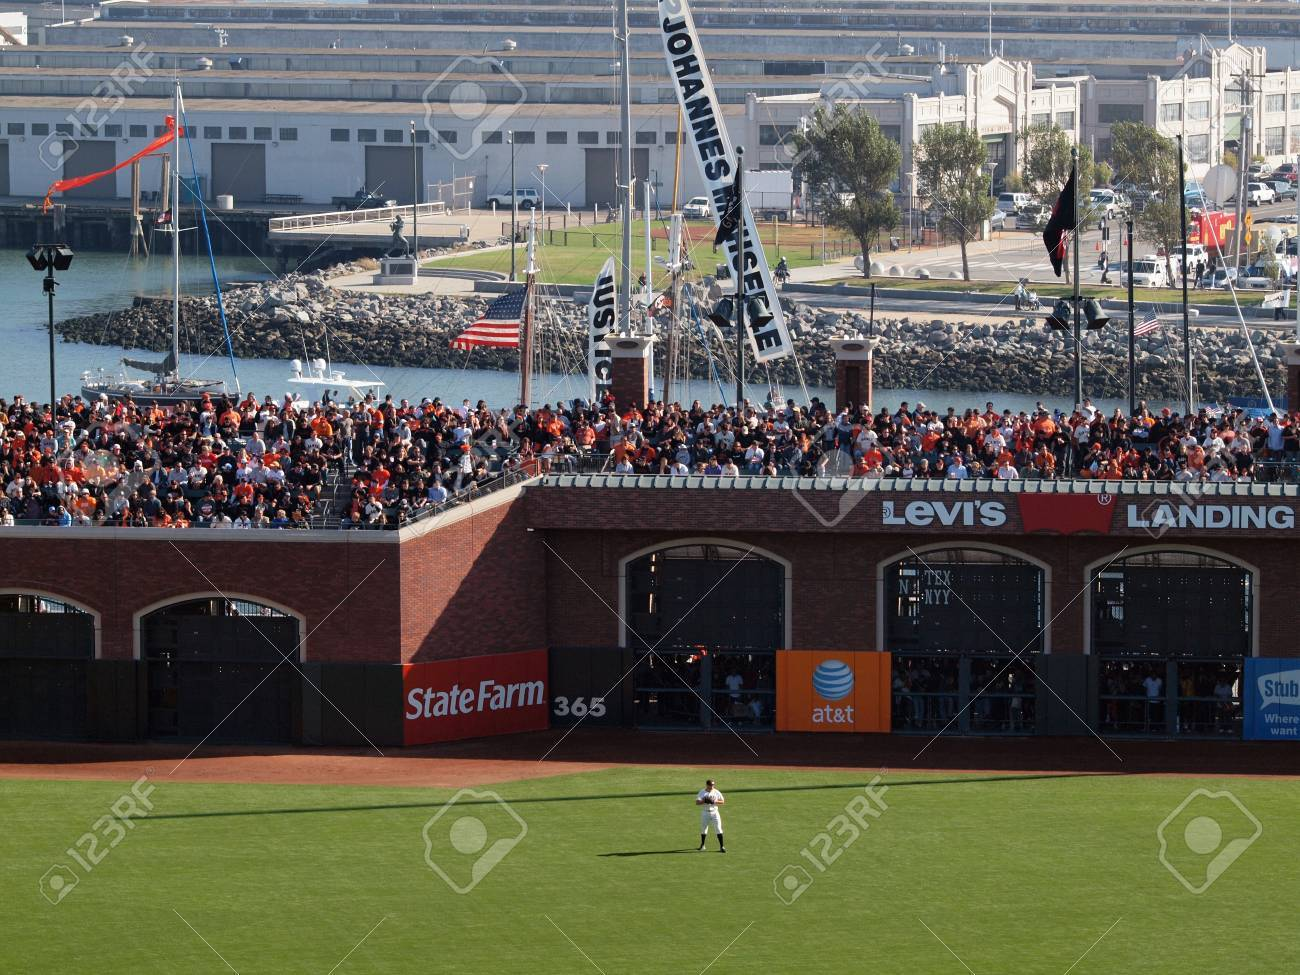 SAN FRANCISCO, CA - OCTOBER 19: Giants vs. Phillies: Giants Right Fielder stands in position with packed bleacher section with Giants fans and McCovey Cove during game 3 NLCS 2010 October 19, 2010 AT&T Park San Francisco California. Stock Photo - 19075530